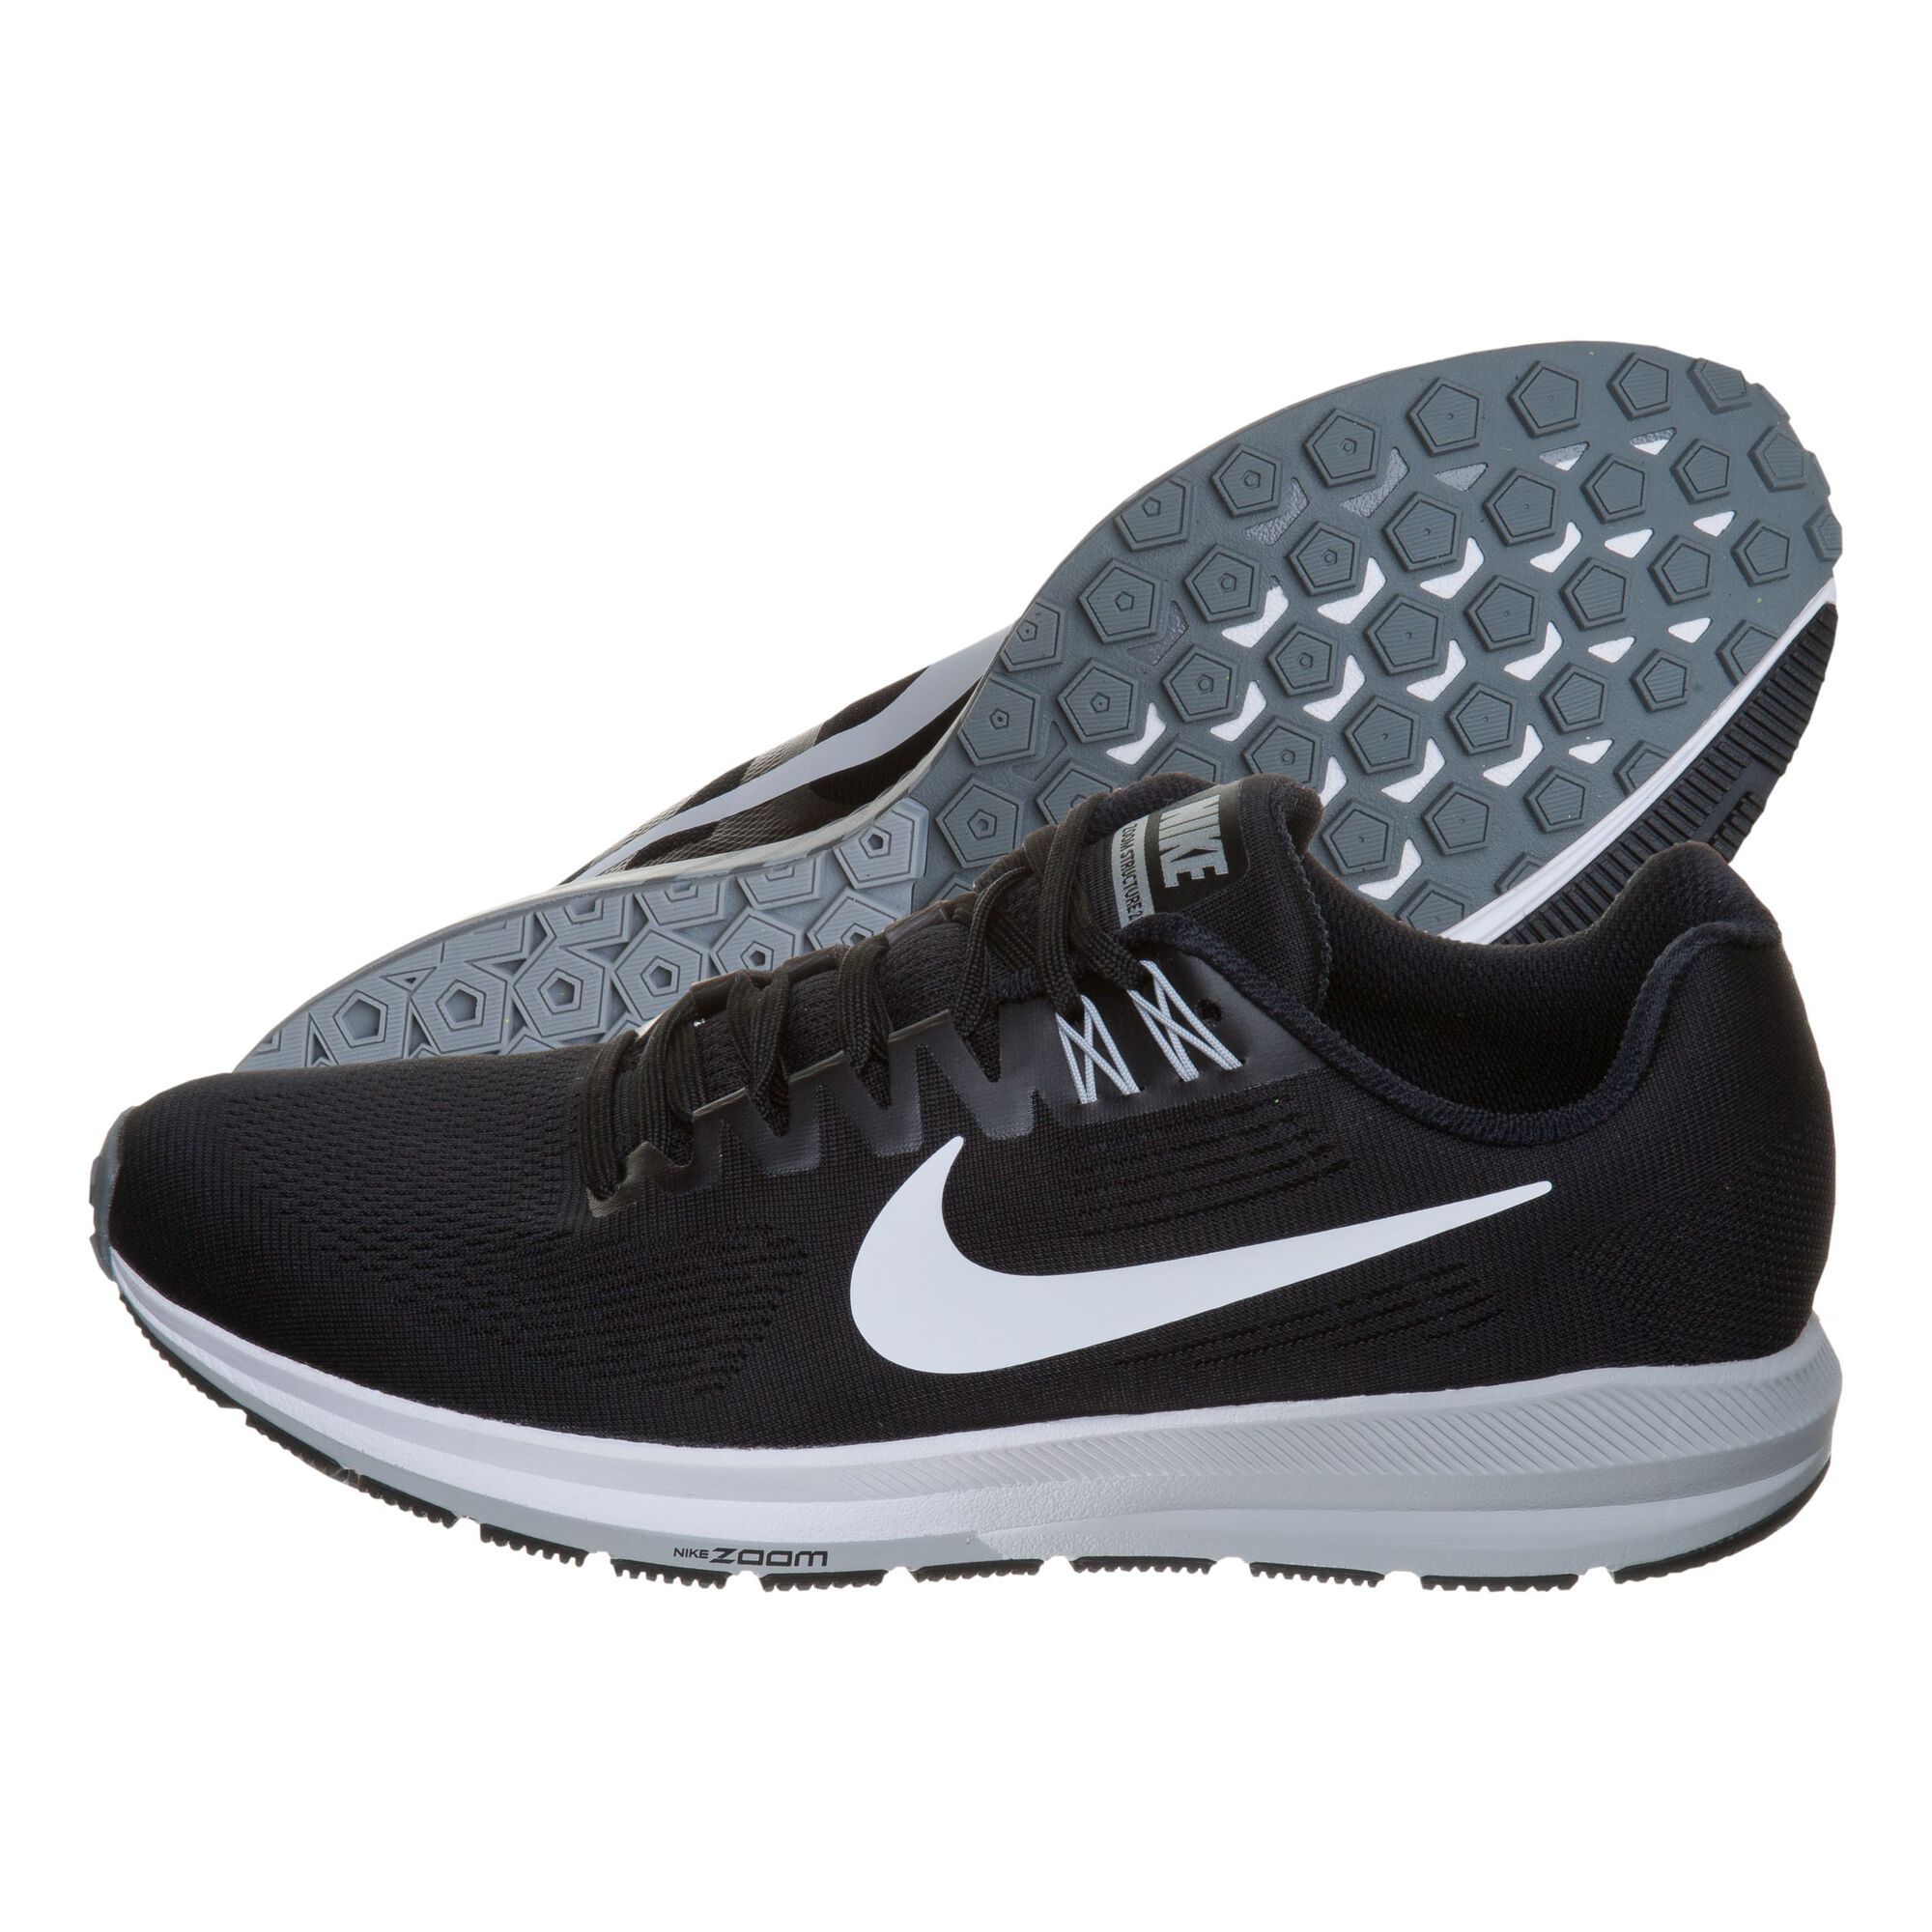 sale retailer 30af7 0a143 ... Nike  Nike  Nike  Nike  Nike  Nike. Air Zoom Structure 21 Men ...